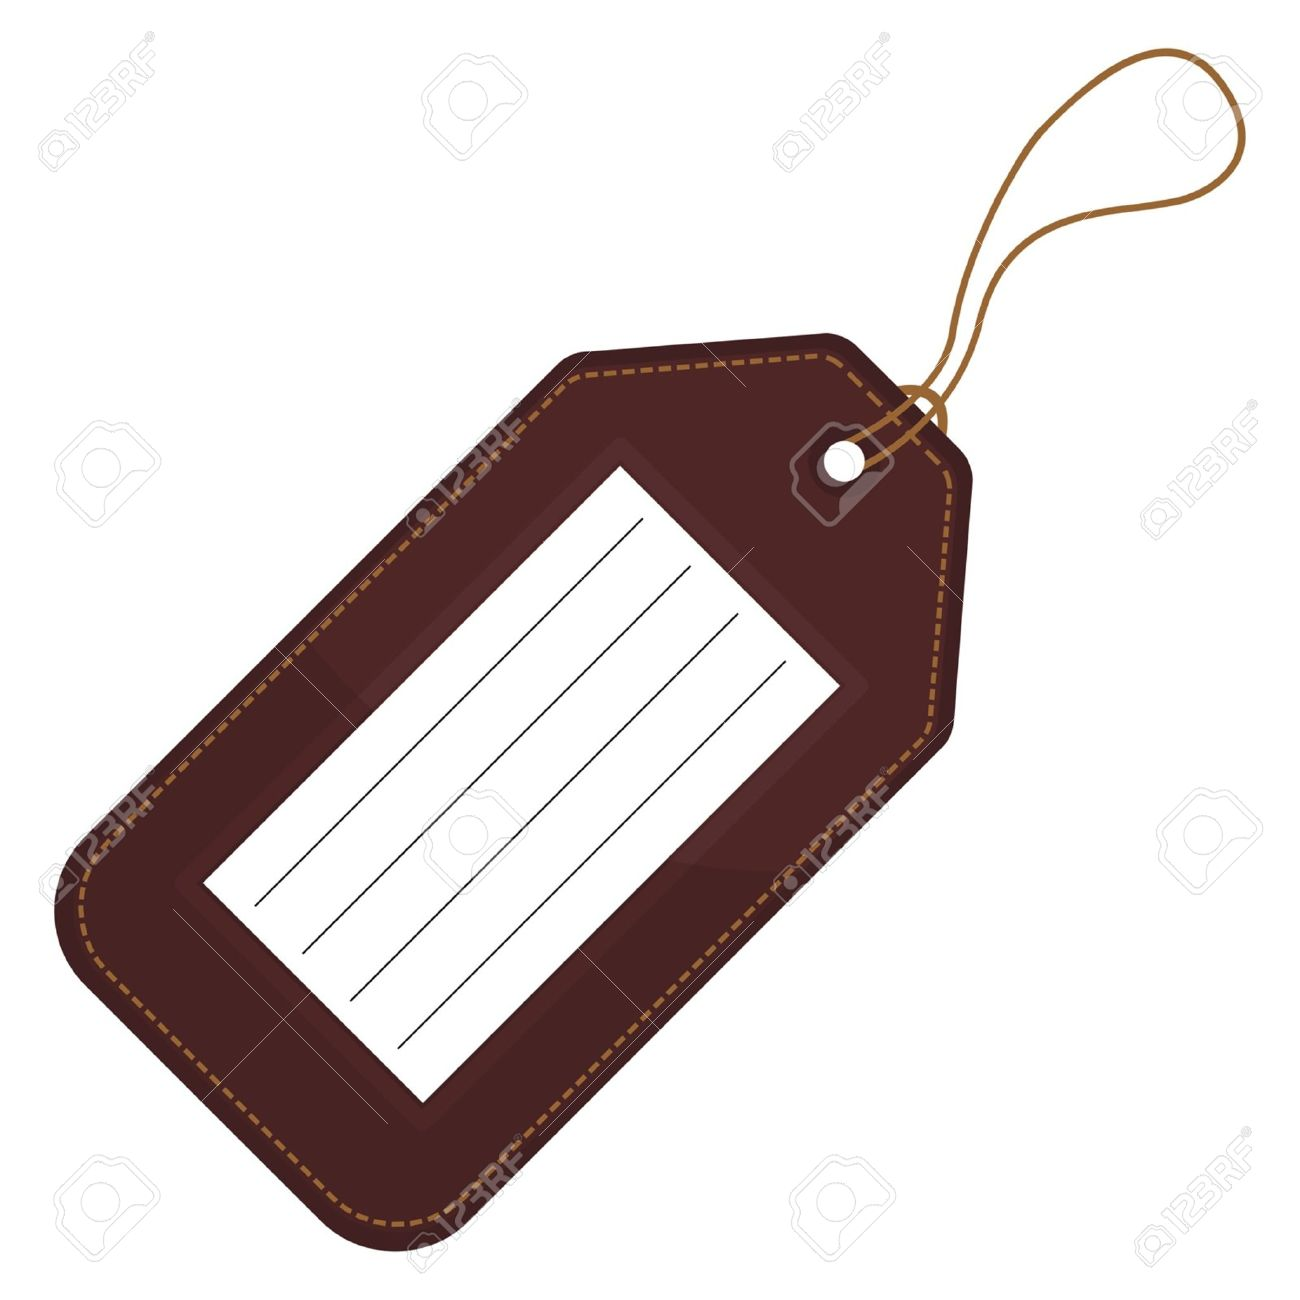 Luggage tag with copy space over white background.